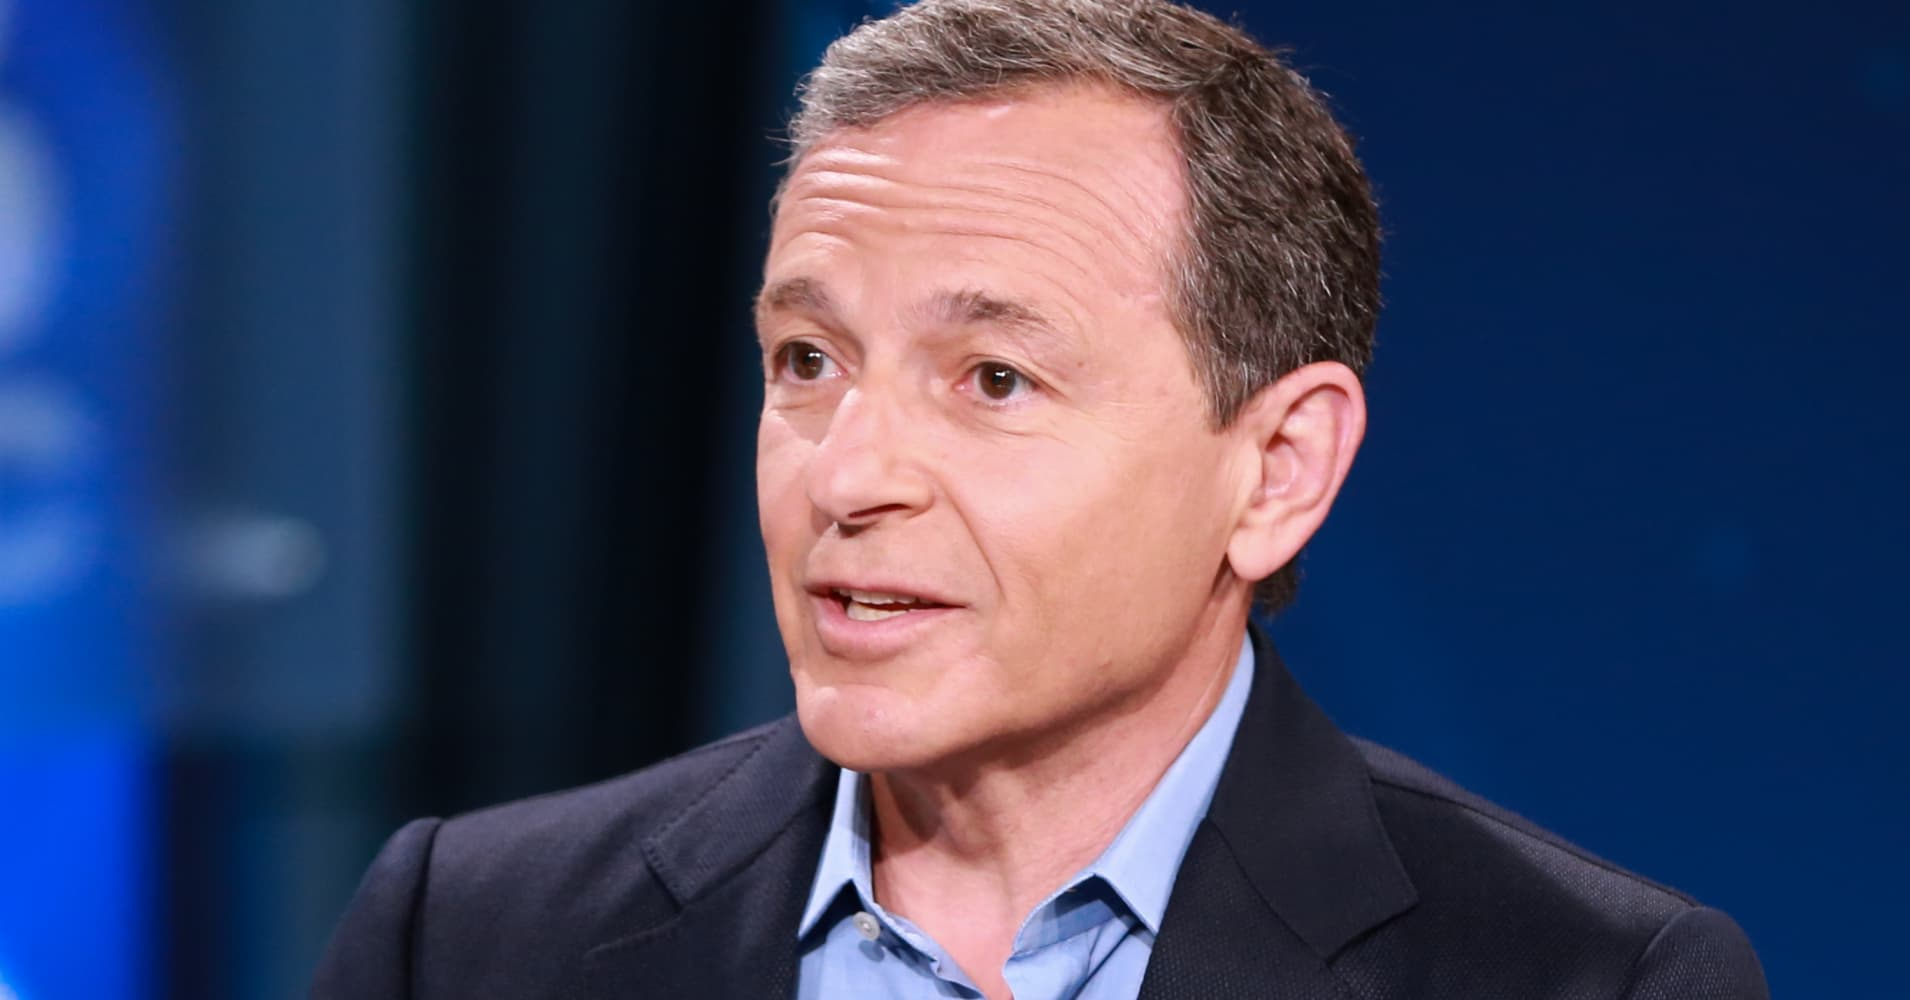 Disney CEO Bob Iger: Confident deal with Fox will close